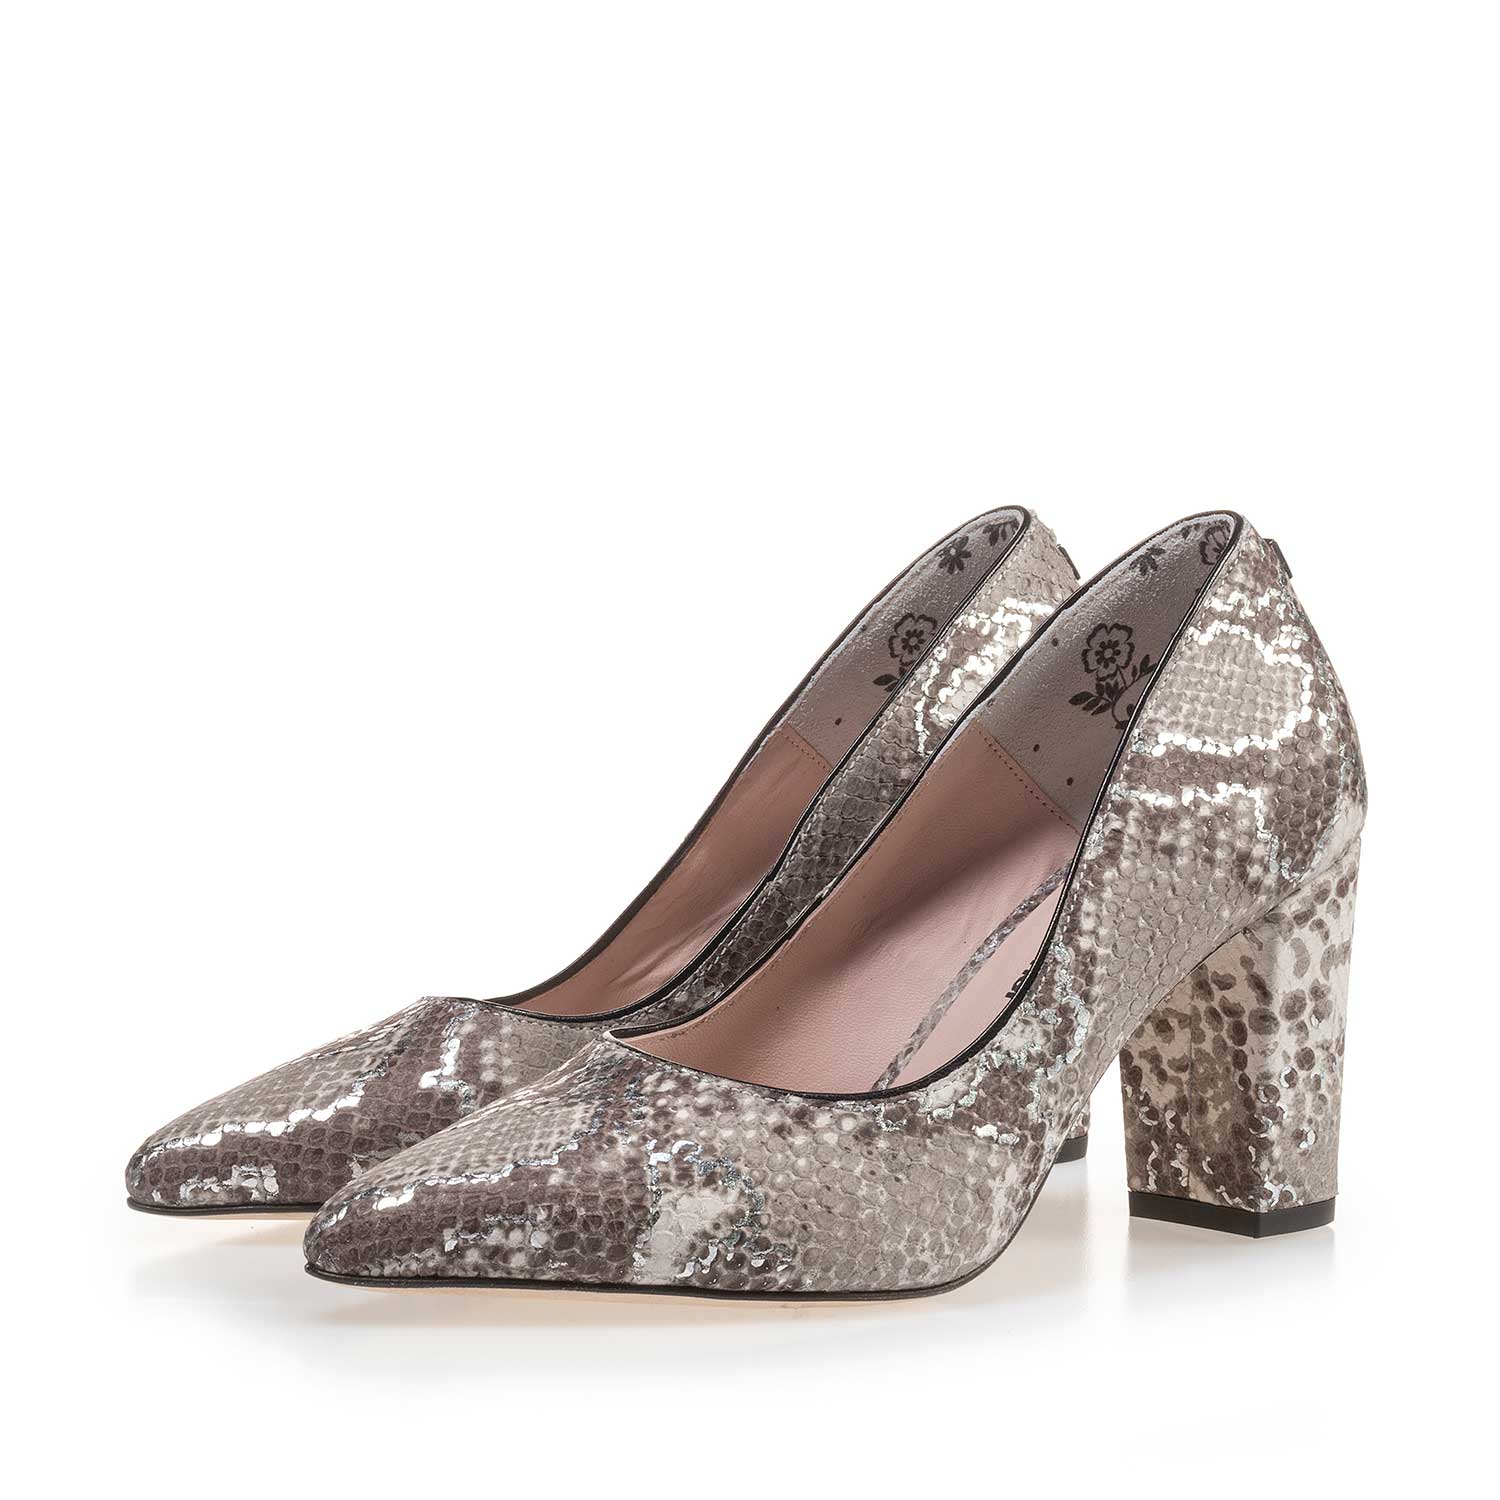 Taupe-coloured Snake Print Leather Pumps